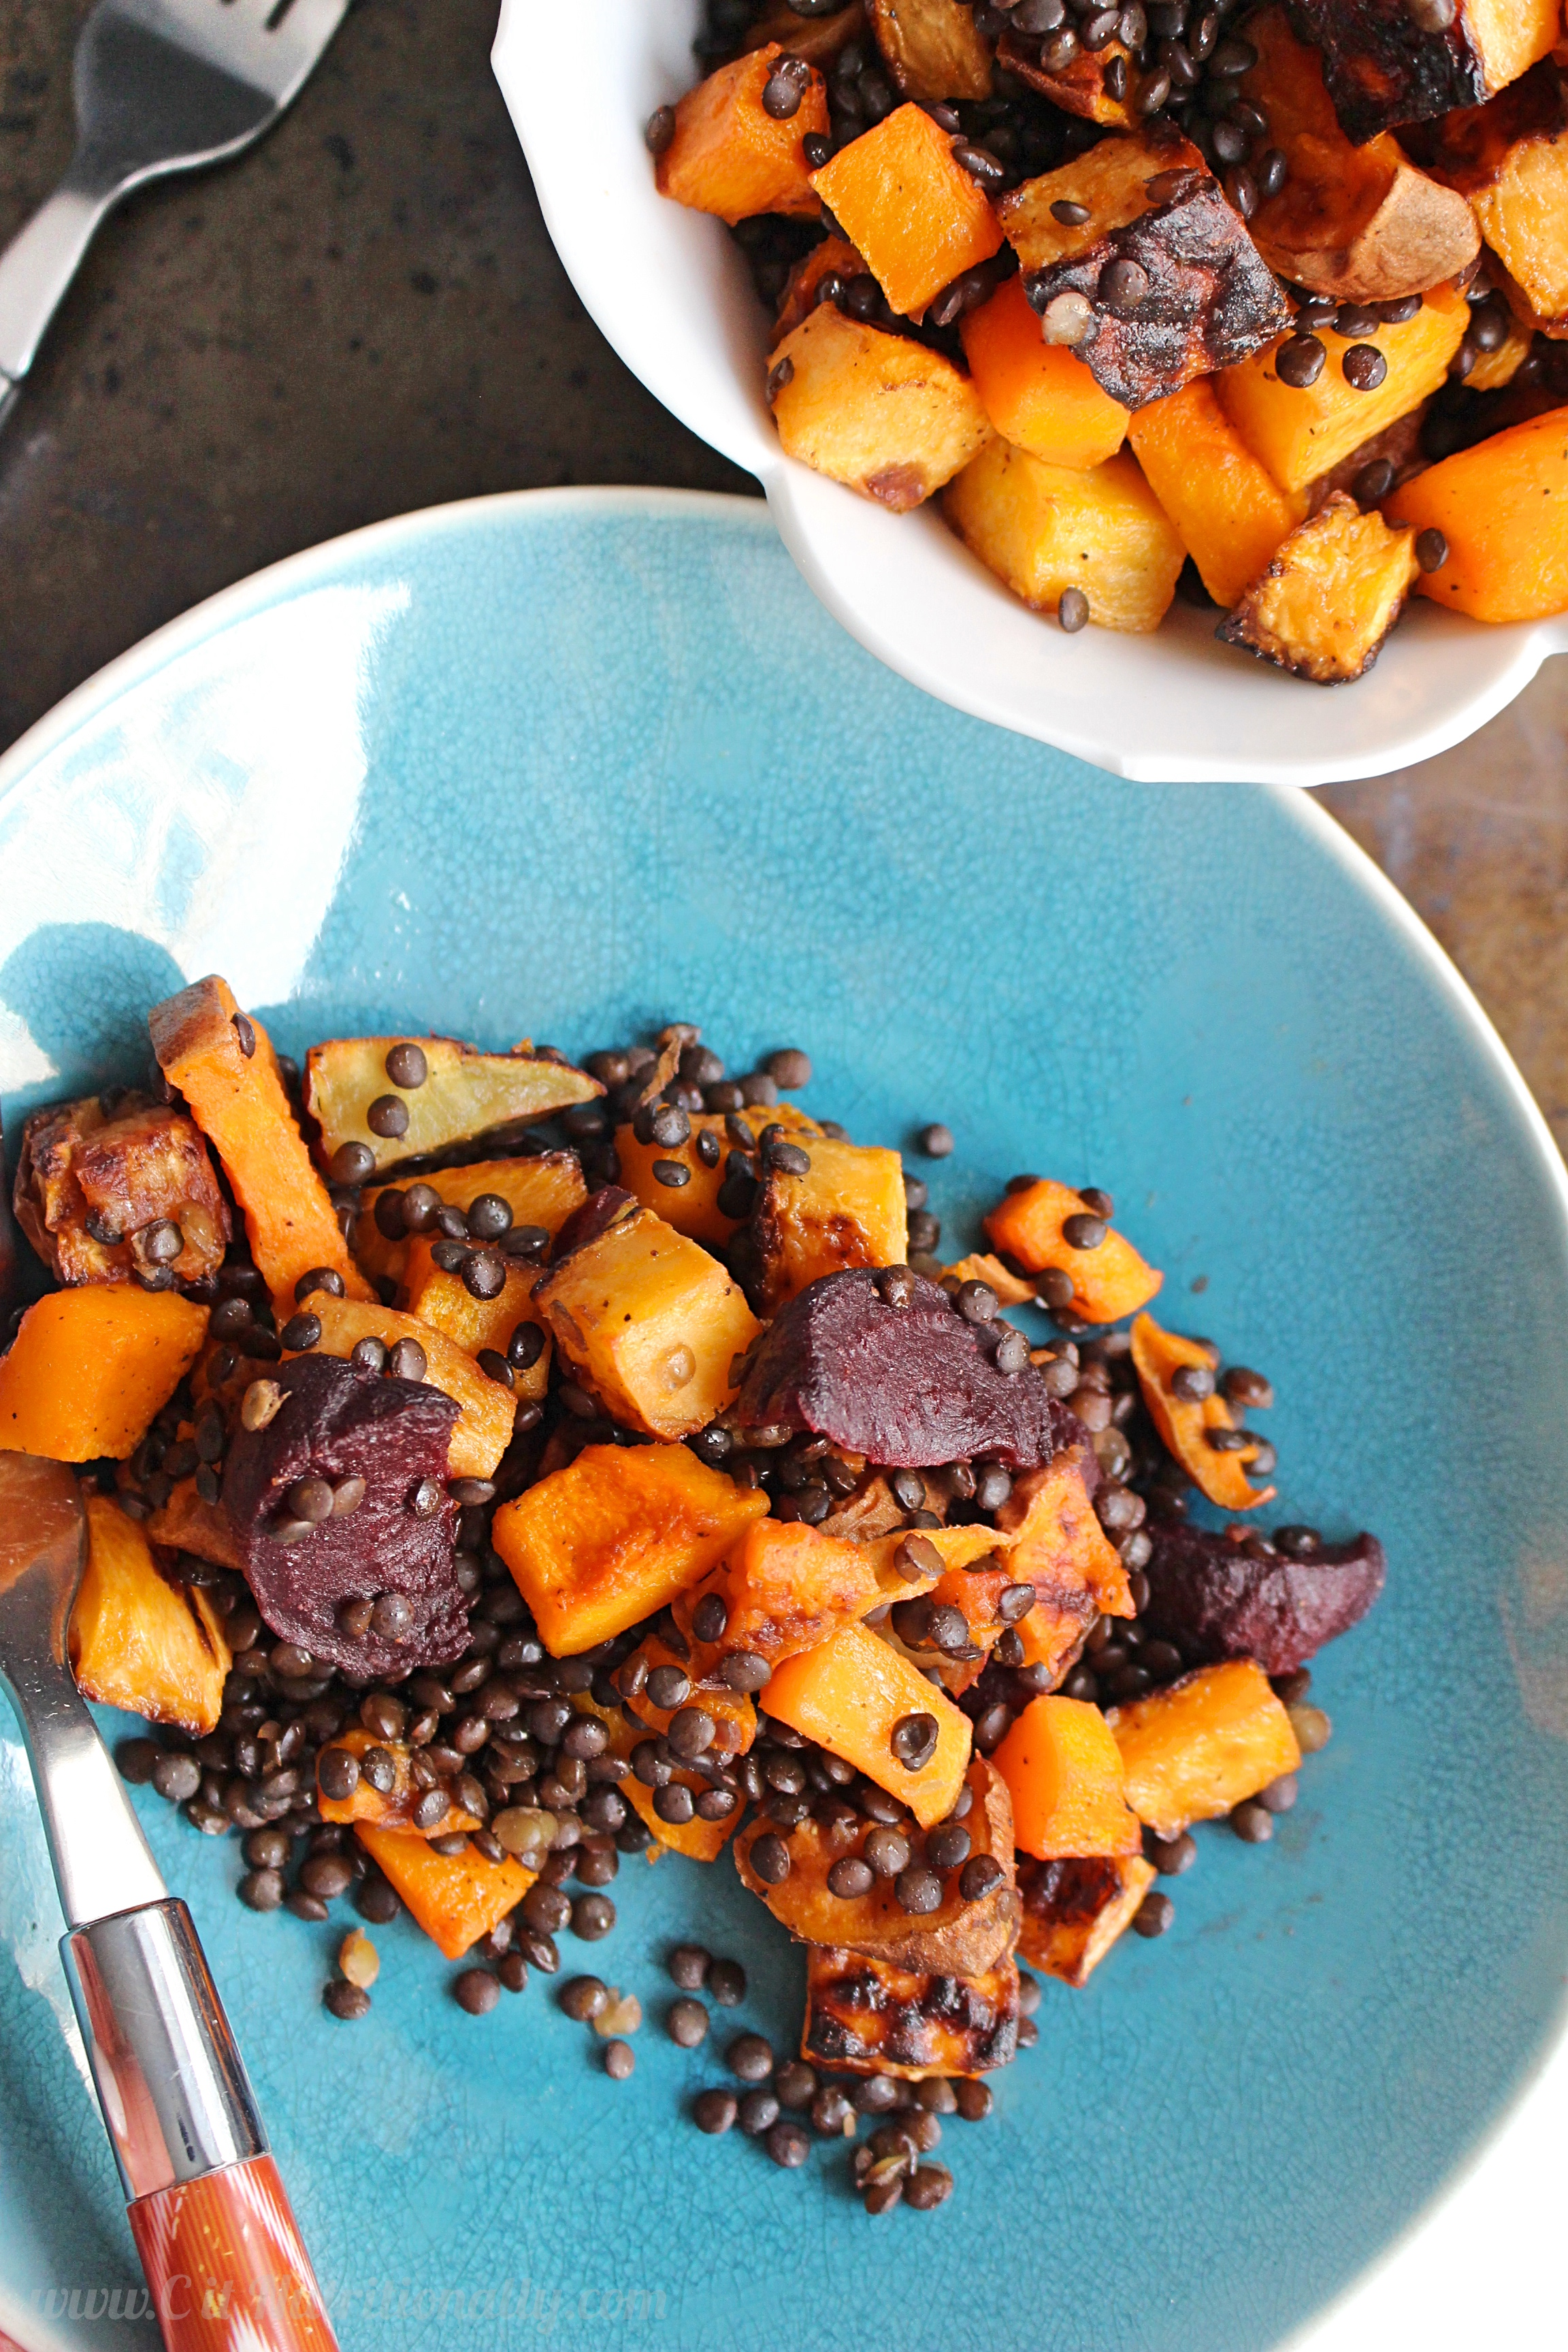 Warm Black Lentil and Root Vegetable Salad | C it Nutritionally